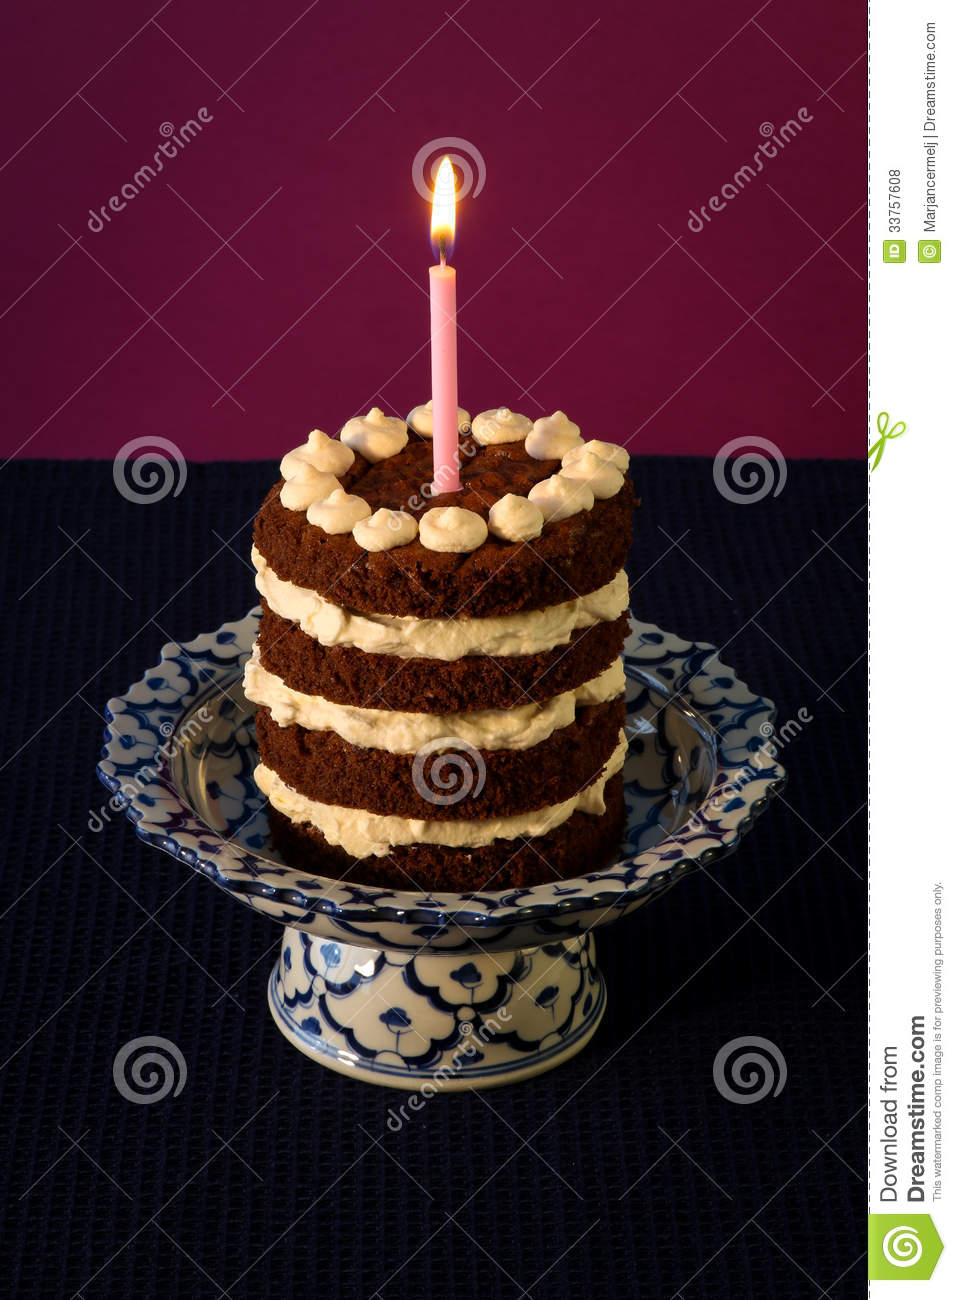 Chocolate Birthday Cake Burning Candle Stock Photo - Image ...